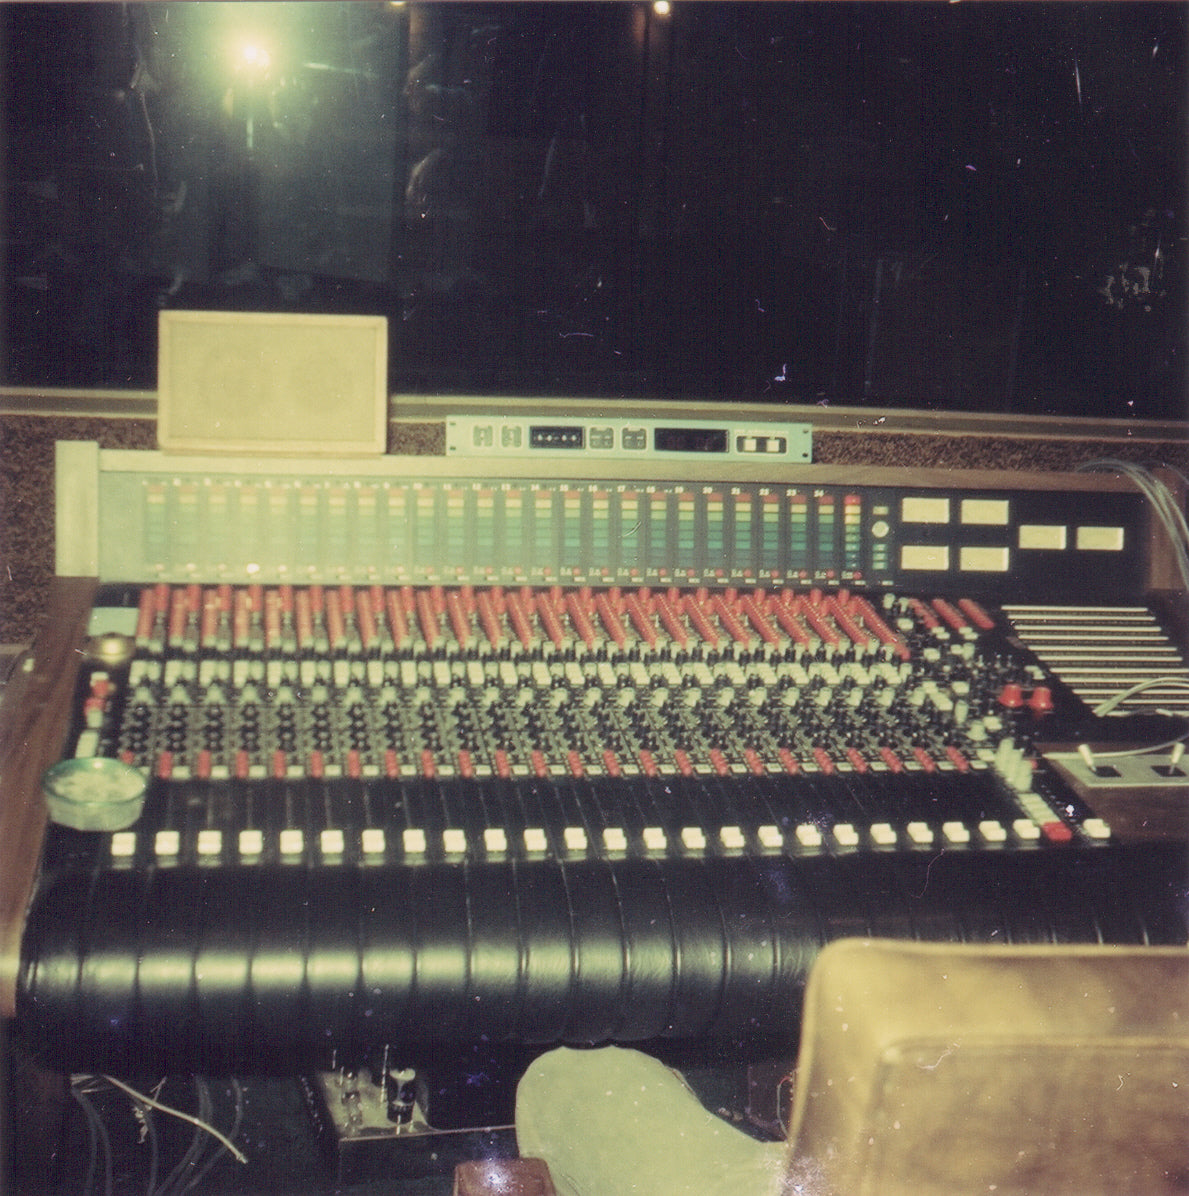 24 Channel Board at Audiotronics studio, where Summer and Kalapana recorded during their residence in Malibu, California.